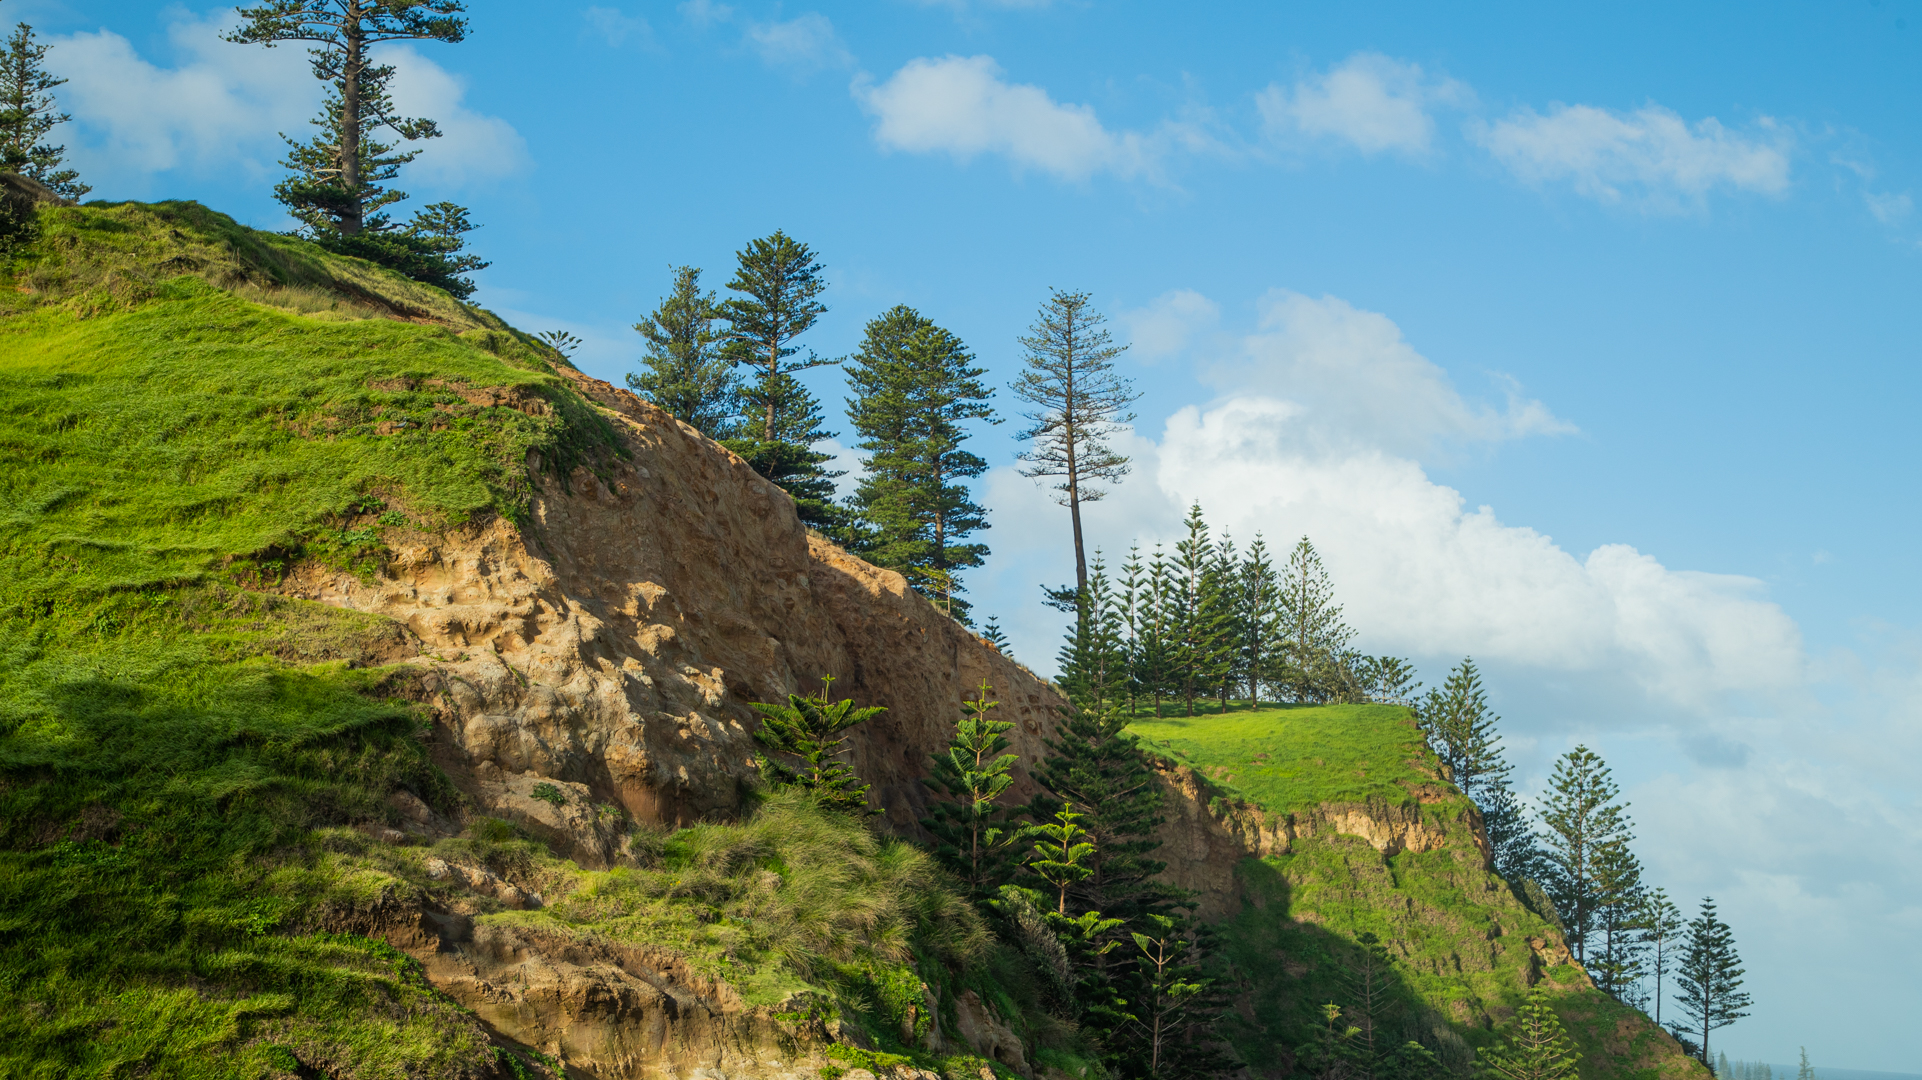 Side-on view looking slightly up at the grass-covered cliffside. Norfolk pine trees grow on the cliff, stretching high into the blue sky.